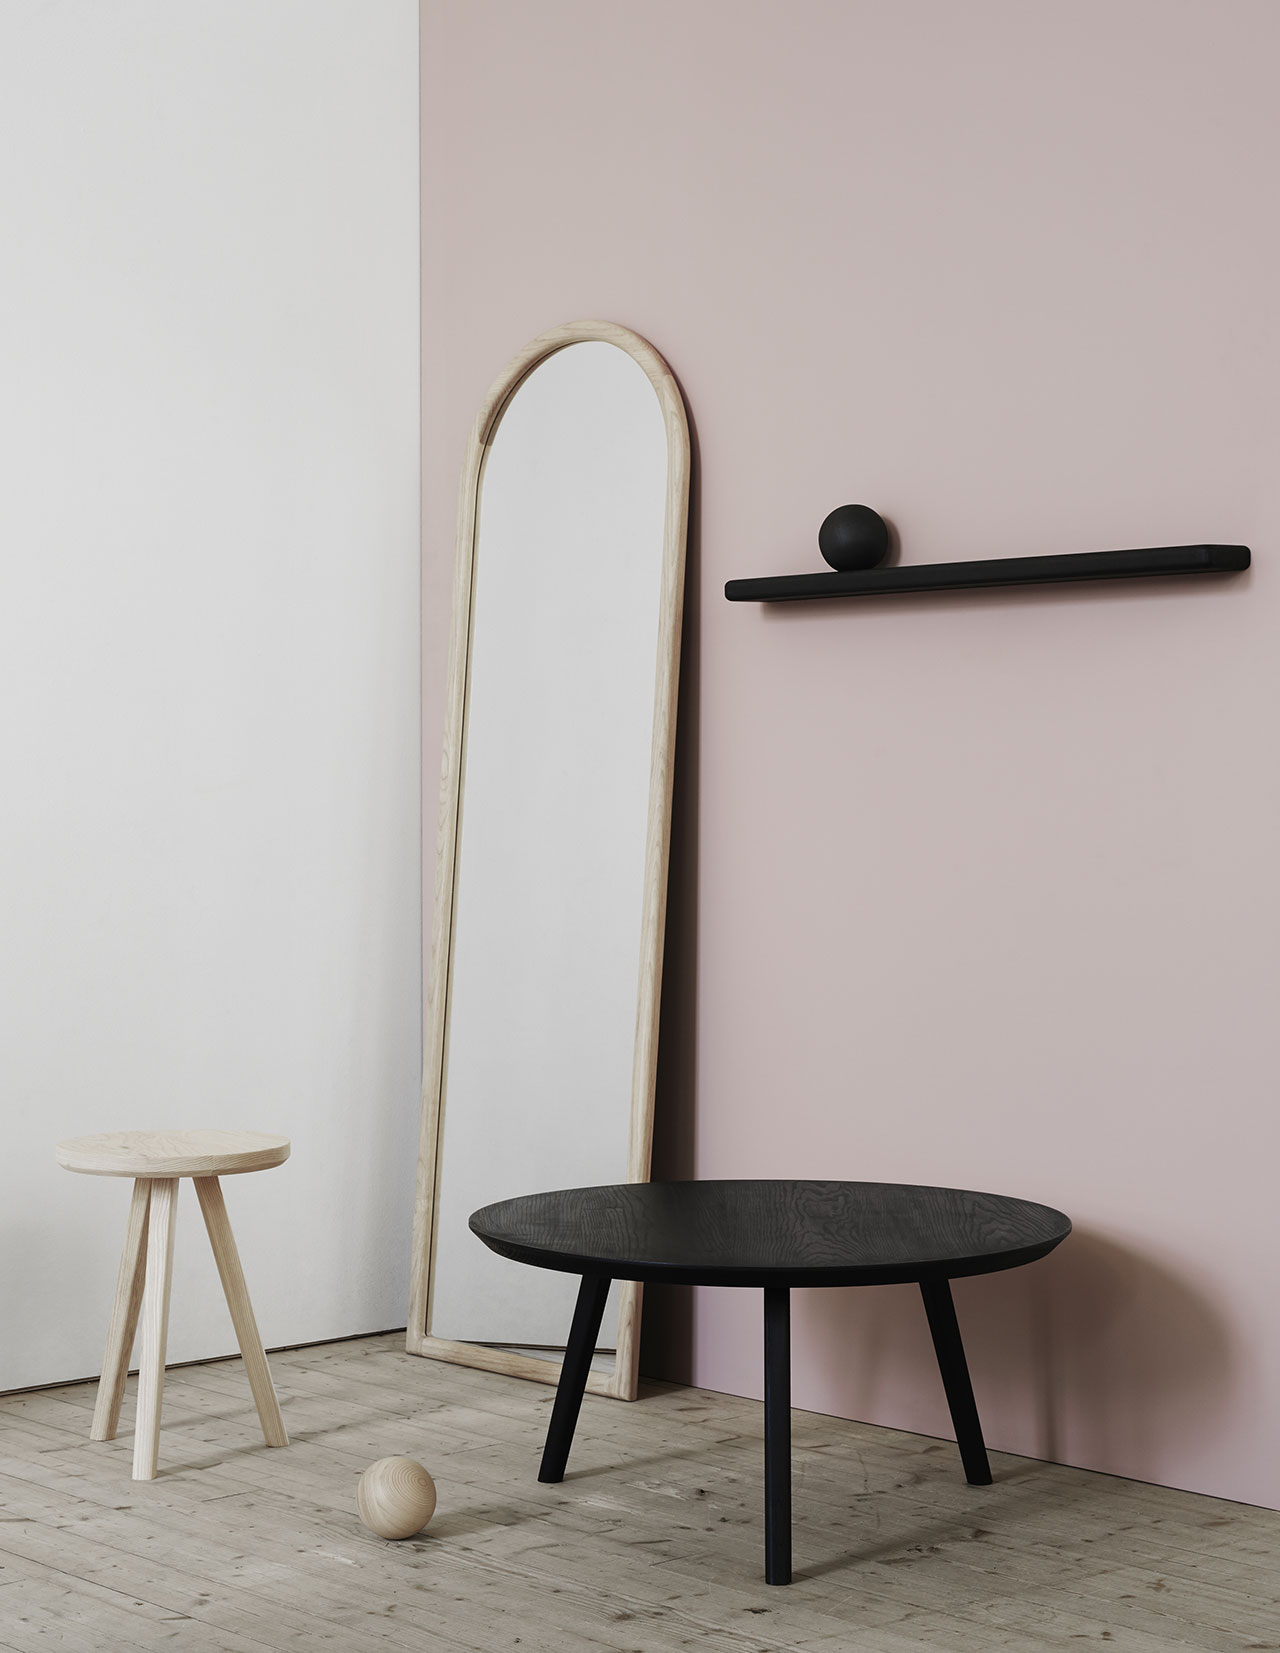 Mirror ash, Stool ash, Coffee table black ash, Orb ash and Shelf magazine Rack black ash all from Melo. Photo by Kristofer Johnsson.